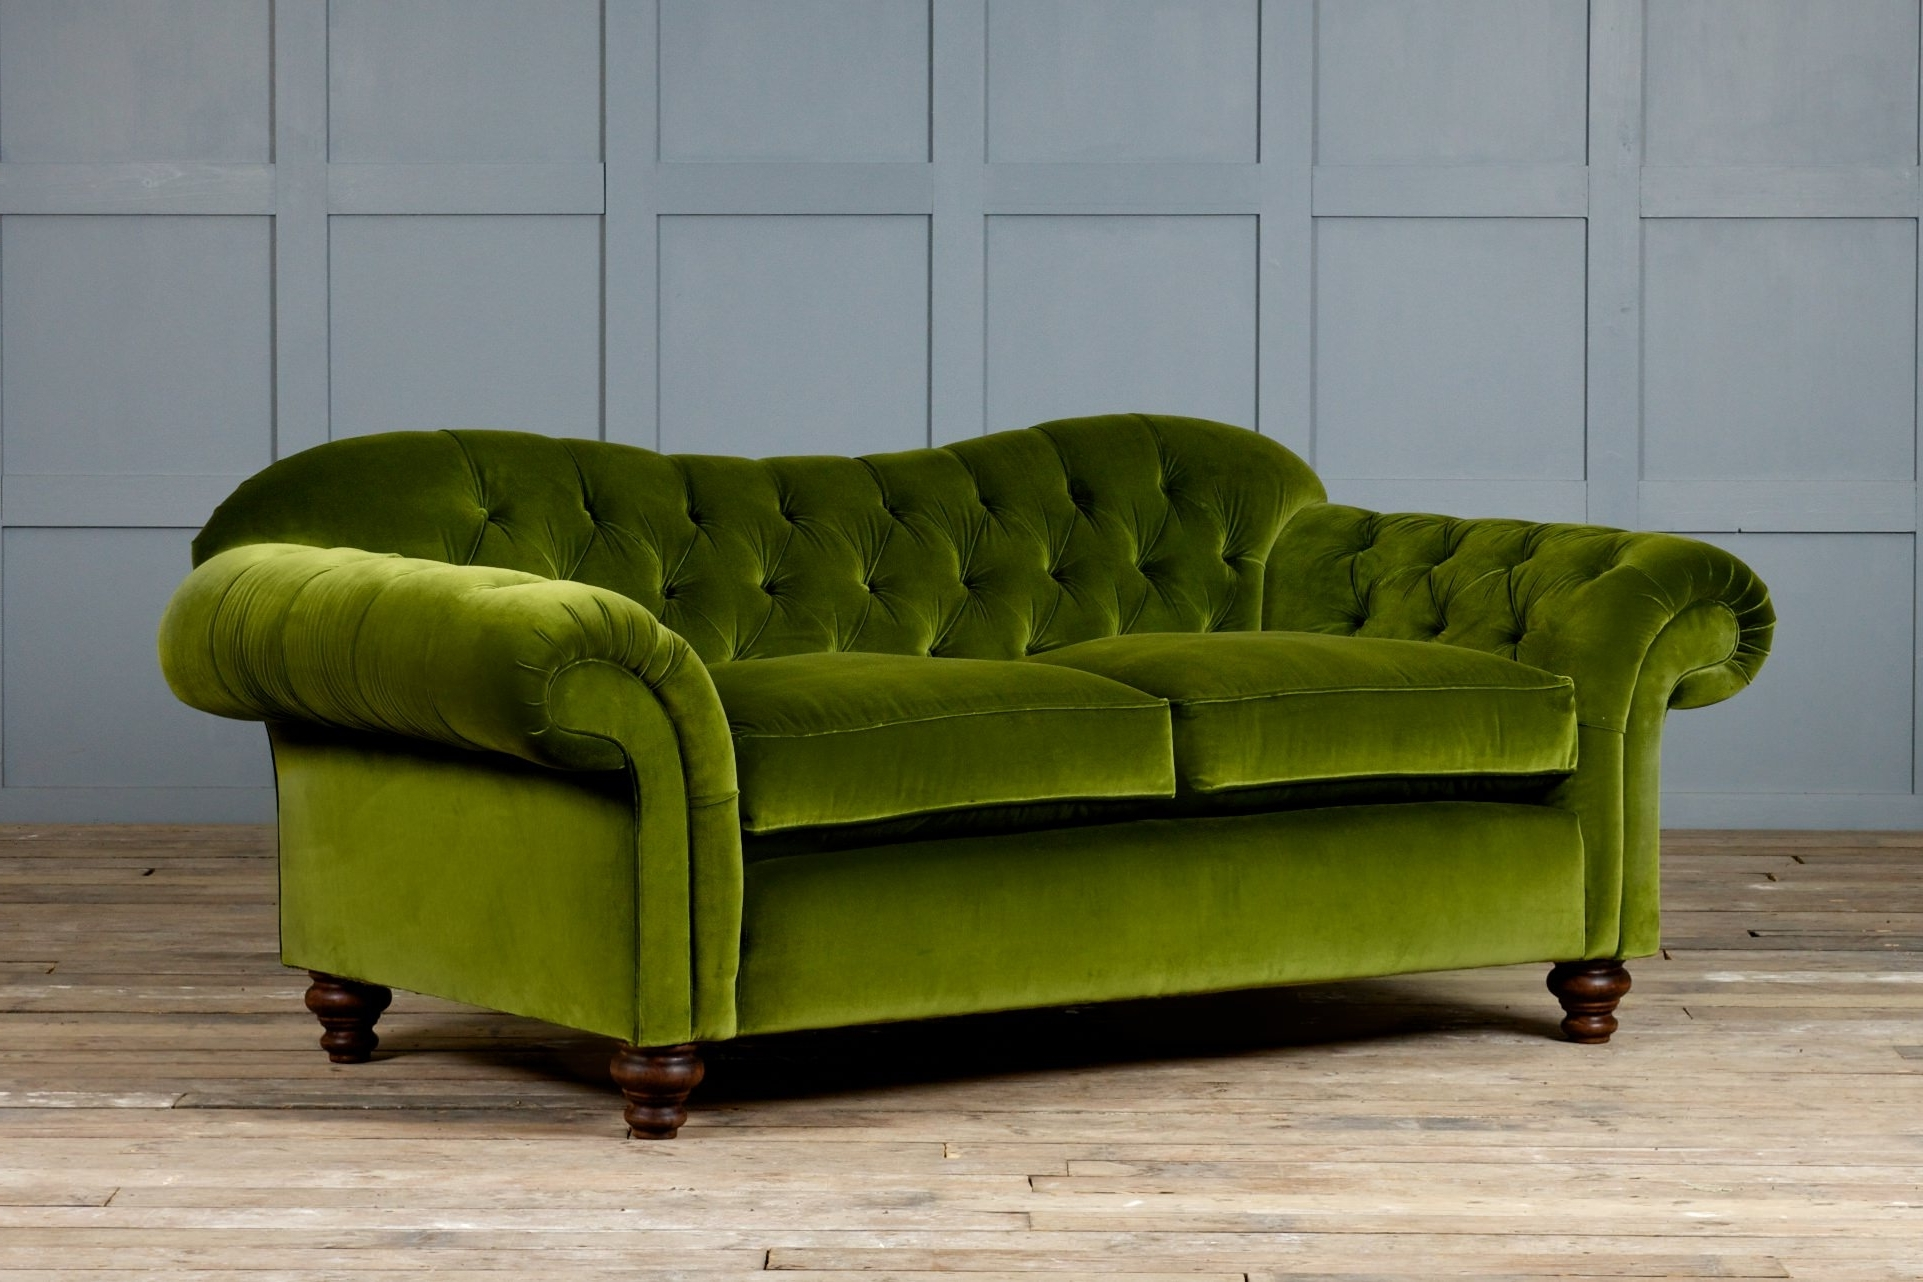 Green Sofa Chairs For Most Current Furniture : Perfect Green Velvet Couch 85 In Modern Sofa Ideas (View 8 of 20)